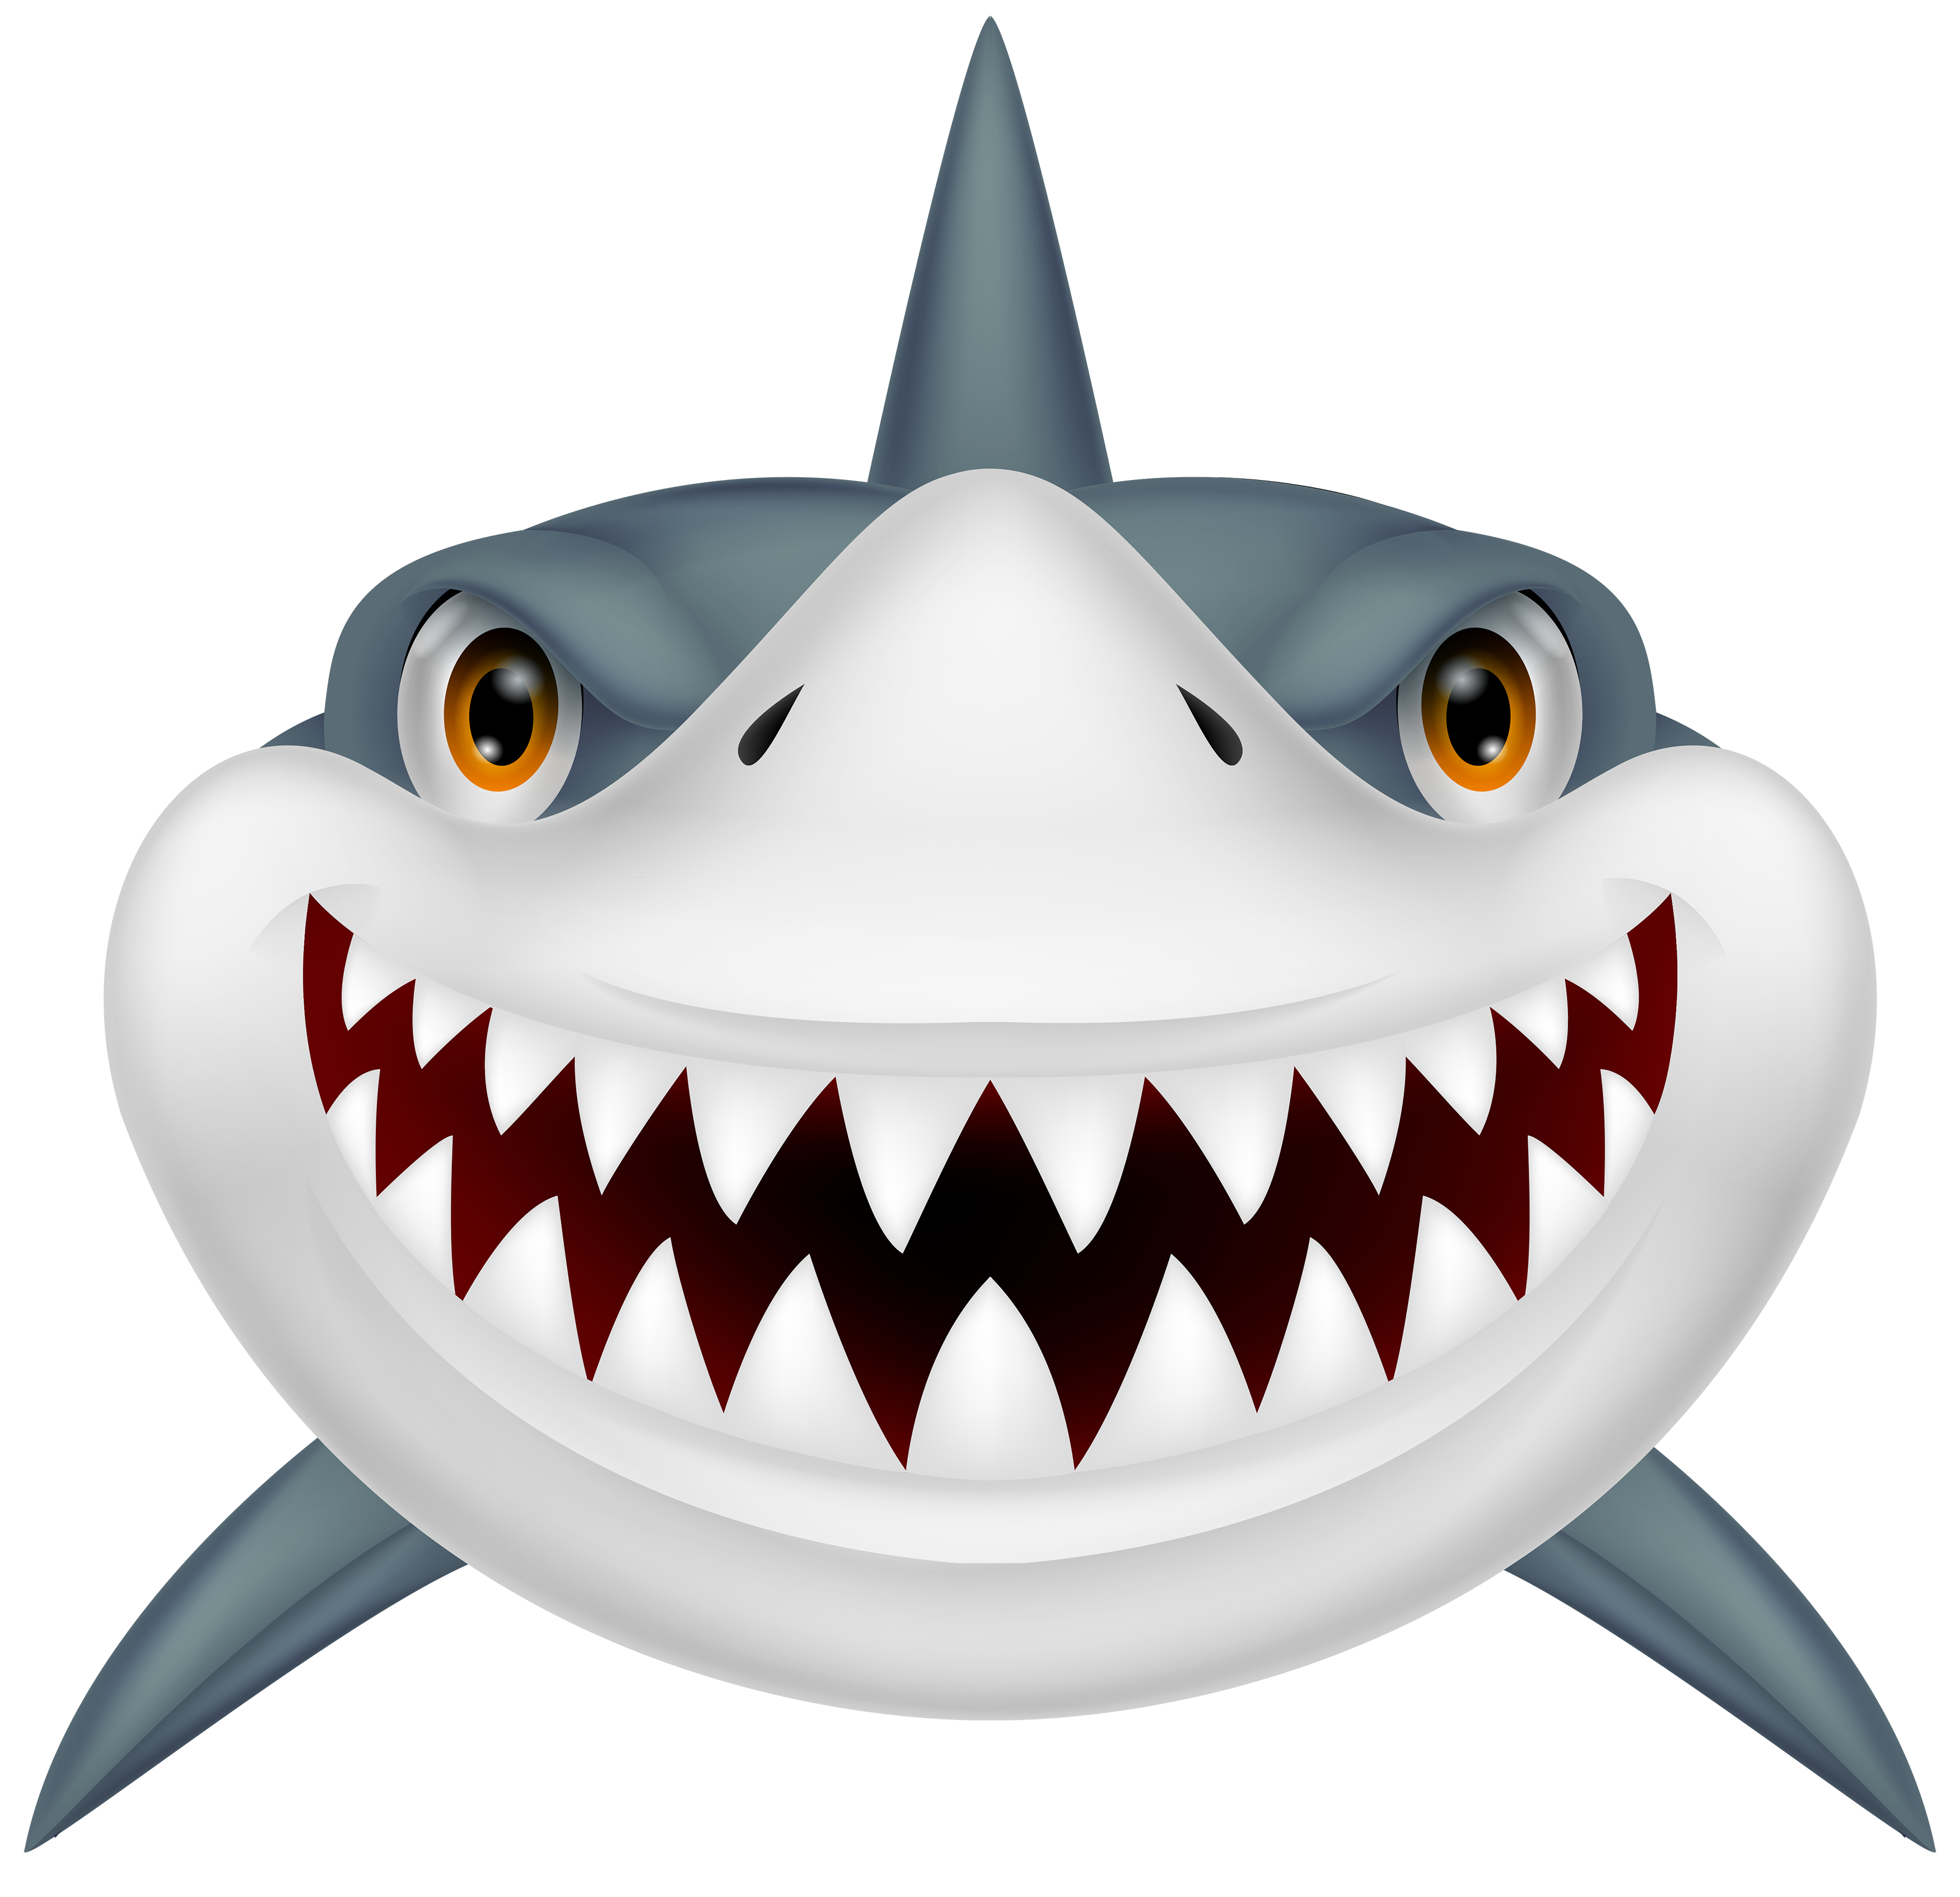 For kids at getdrawings. Water clipart shark